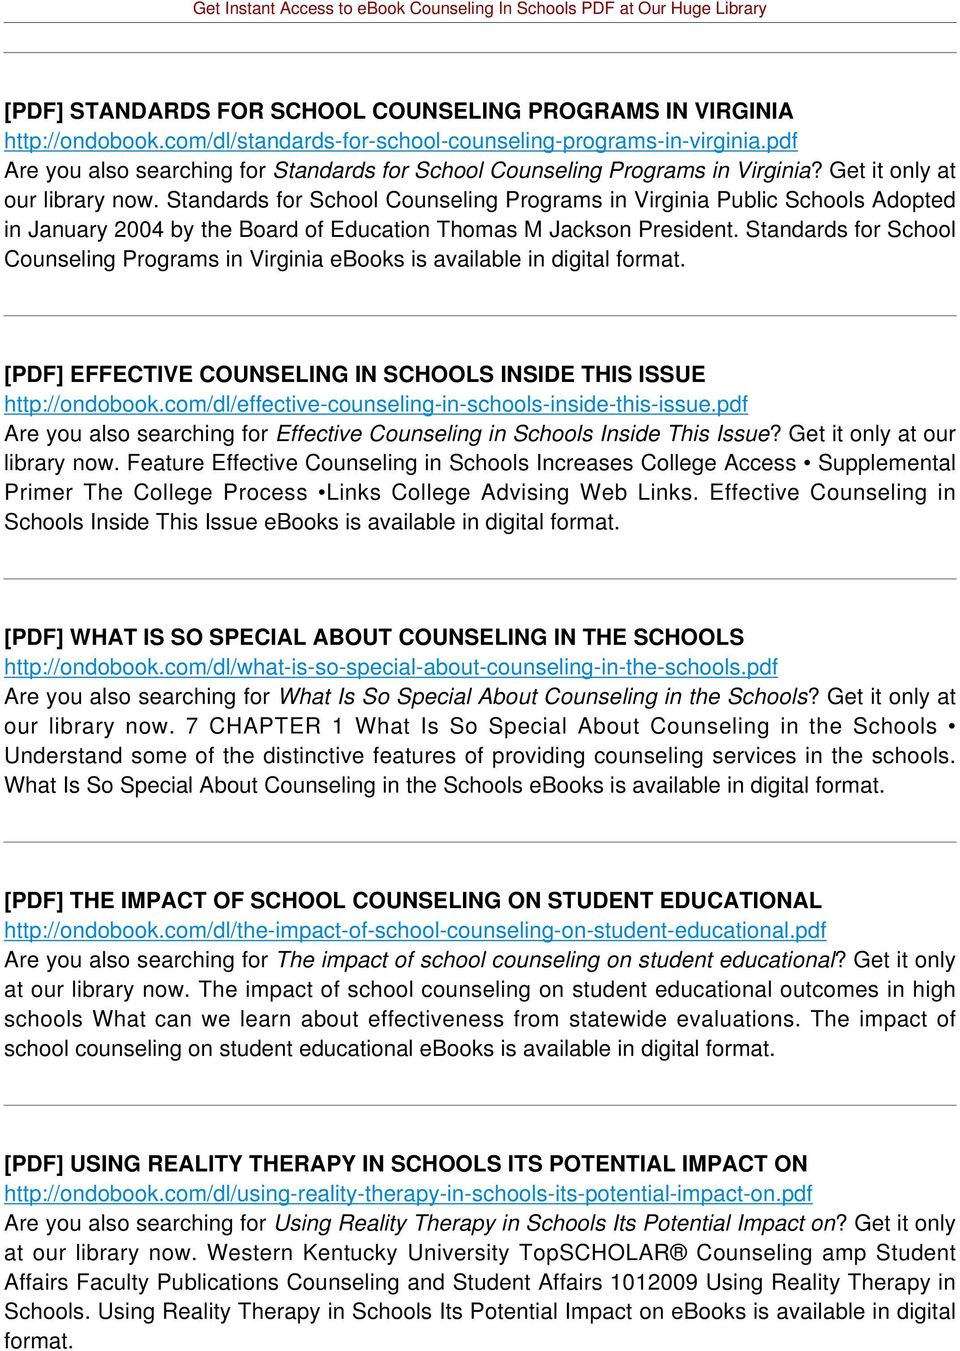 Standards for School Counseling Programs in Virginia Public Schools Adopted in January 2004 by the Board of Education Thomas M Jackson President.